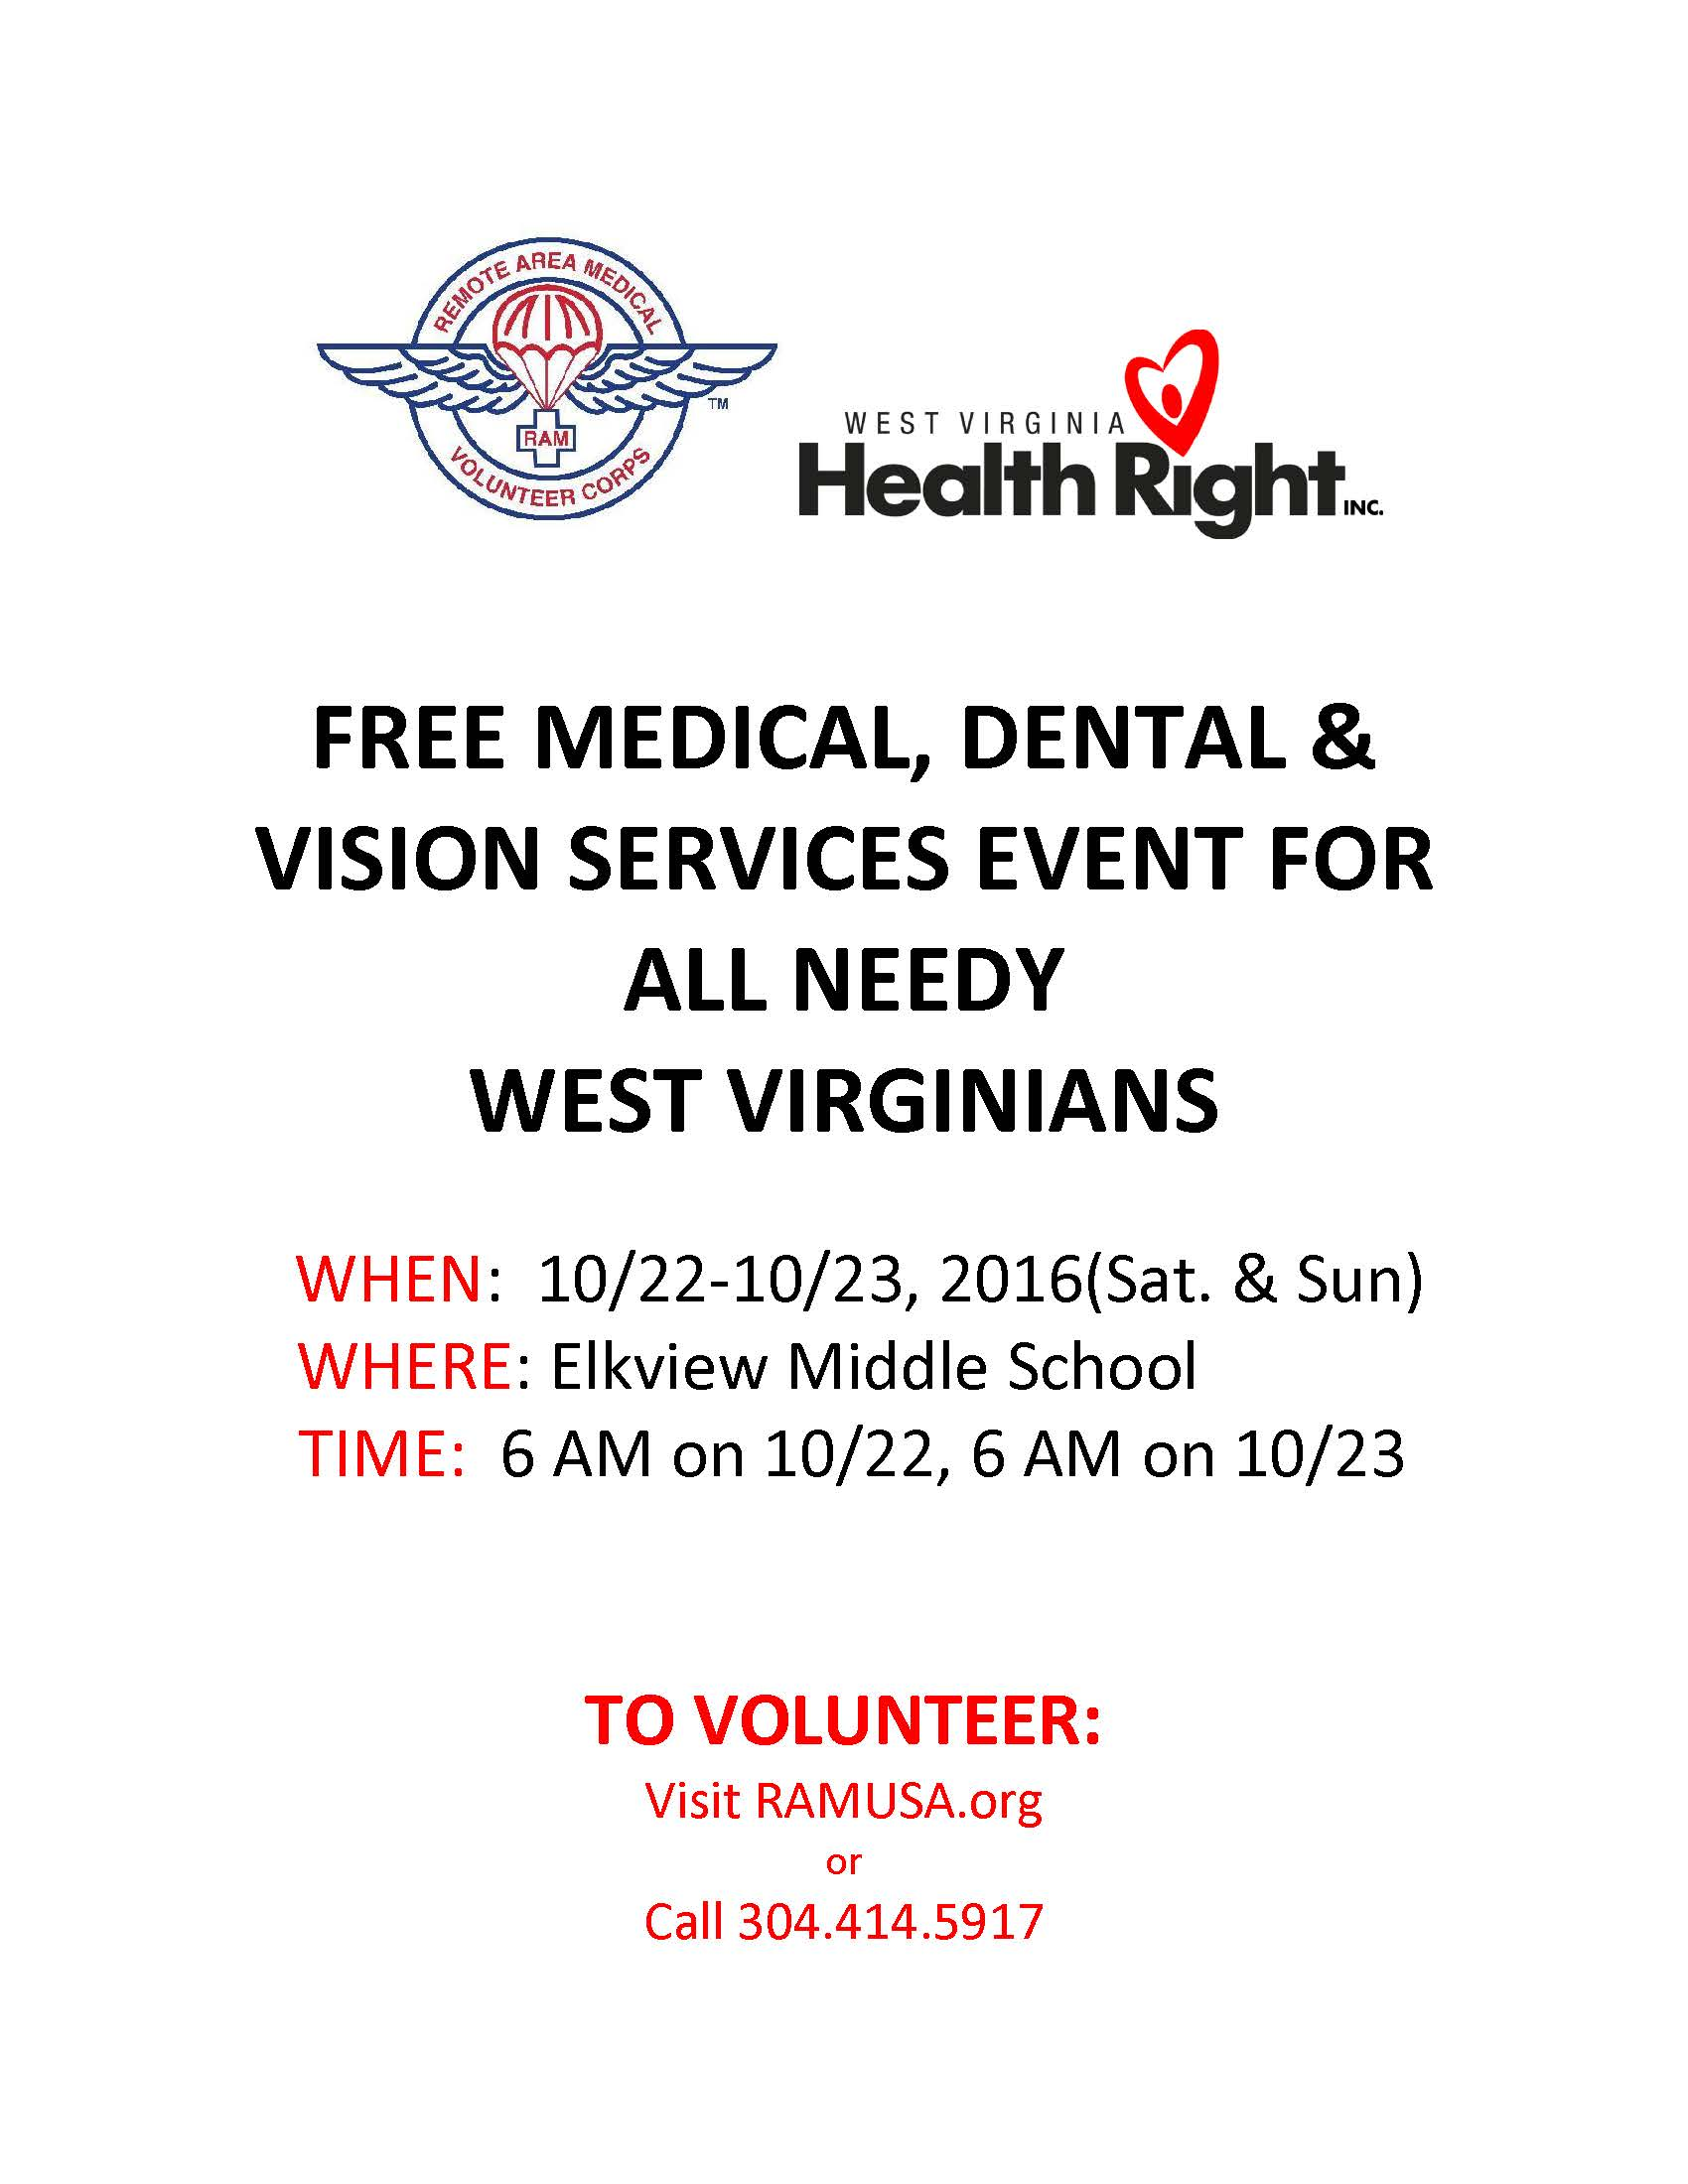 wv-health-right-flyer